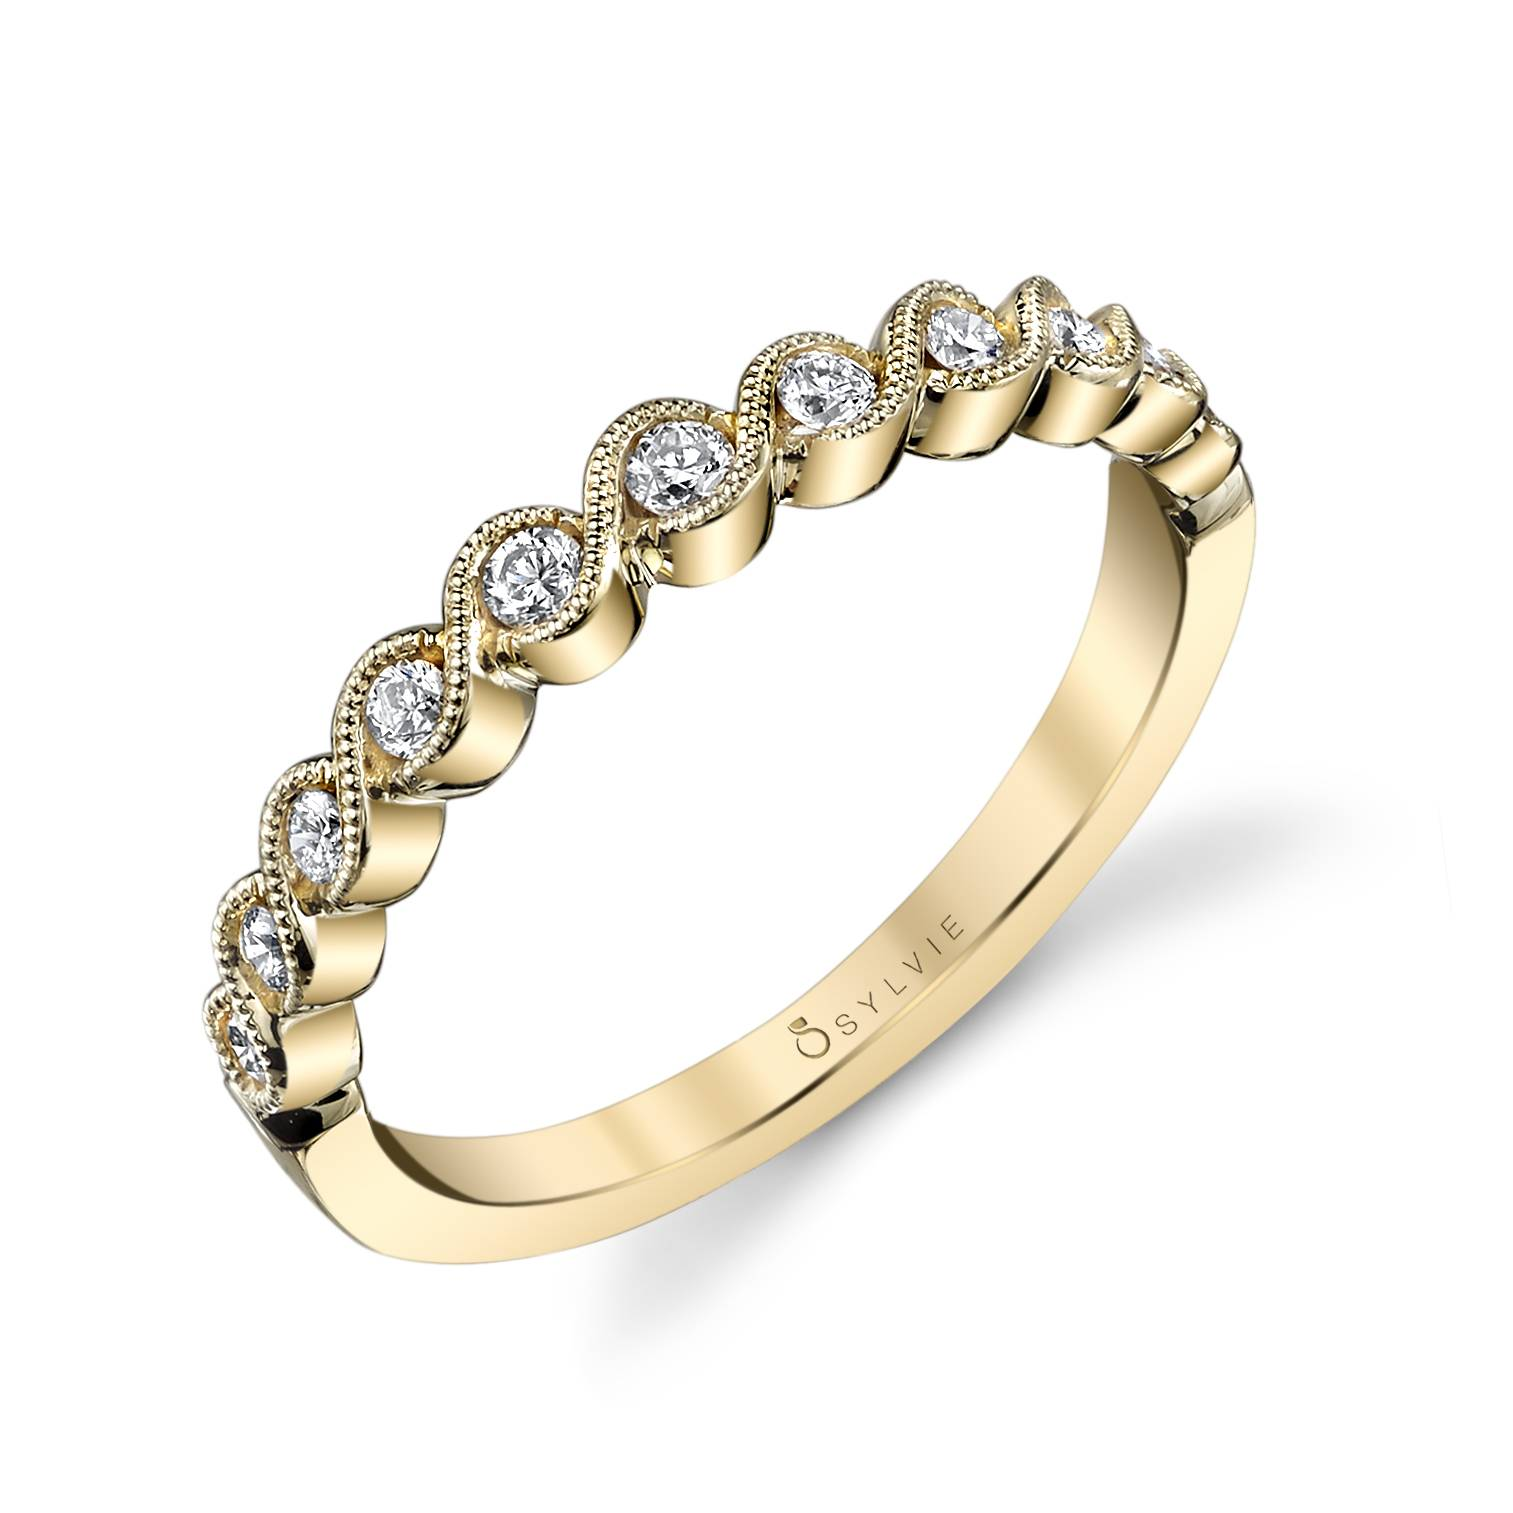 Dalia – White Gold & Diamond Stackable Wedding Band